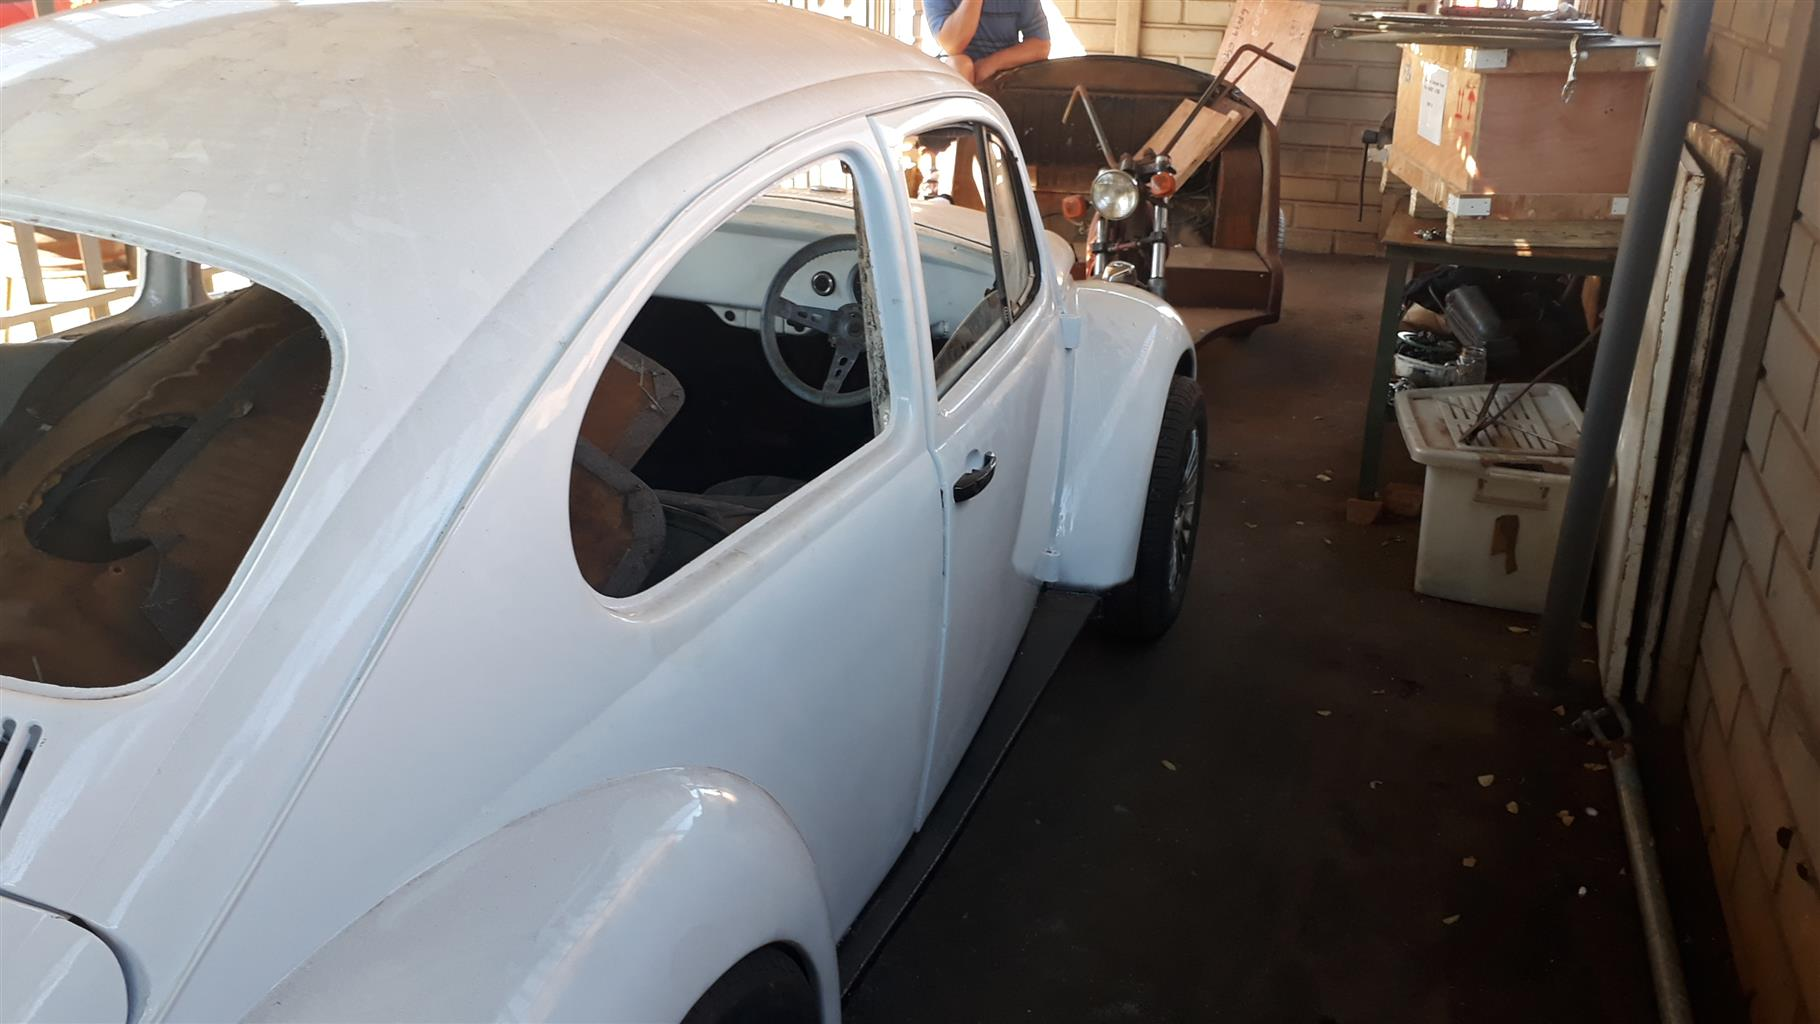 1960 Vw Beetle 20 Junk Mail Volkswagen Interior